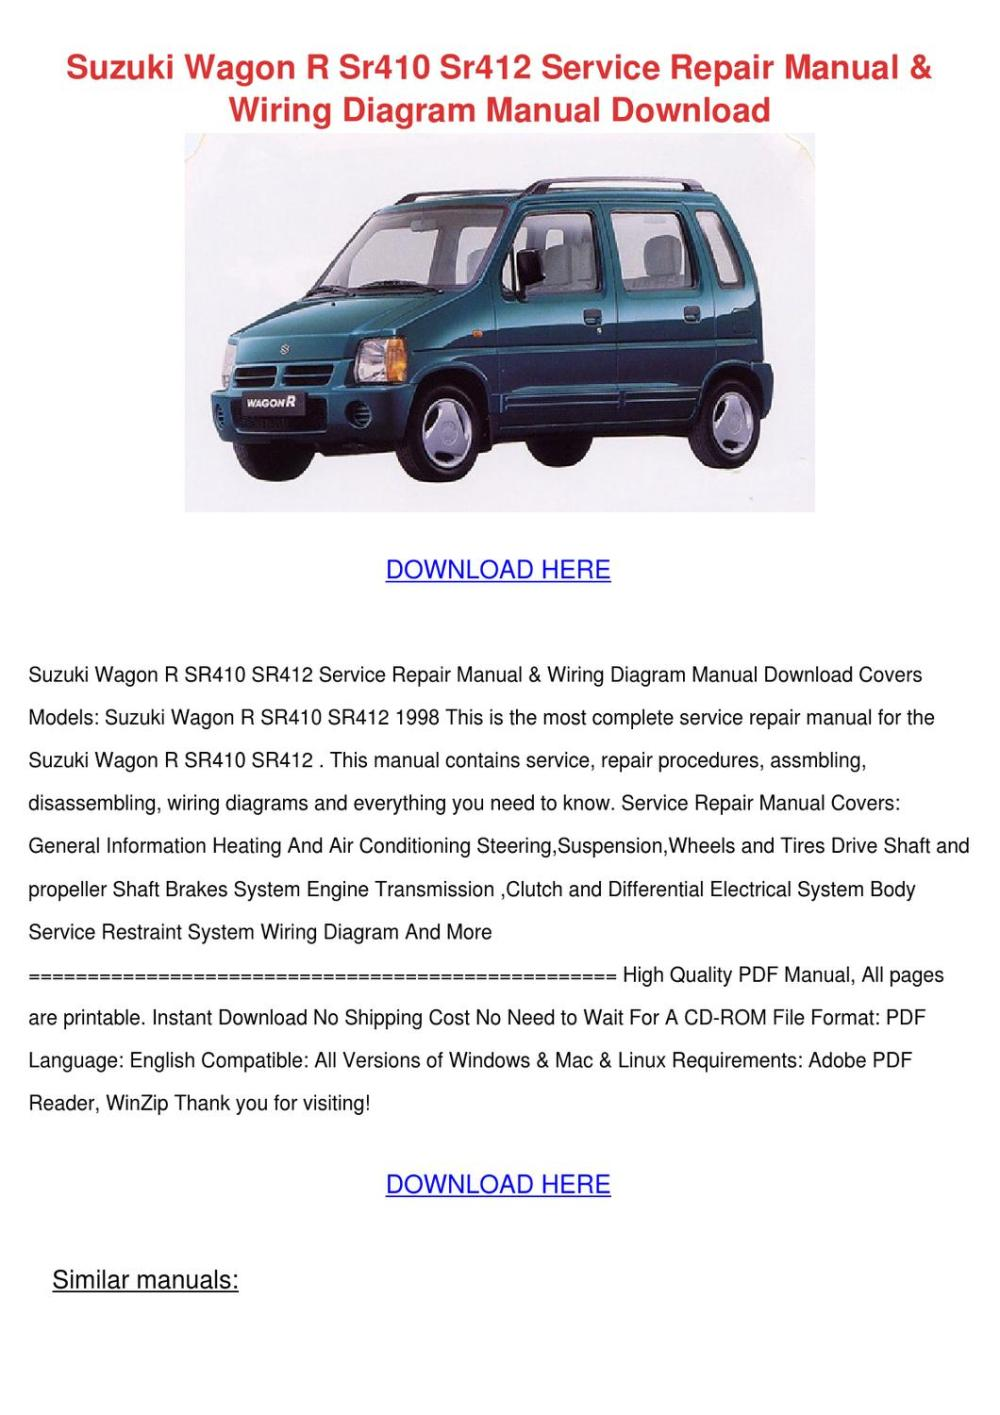 medium resolution of suzuki wagon r sr410 sr412 service repair man by yadira angeli issuu